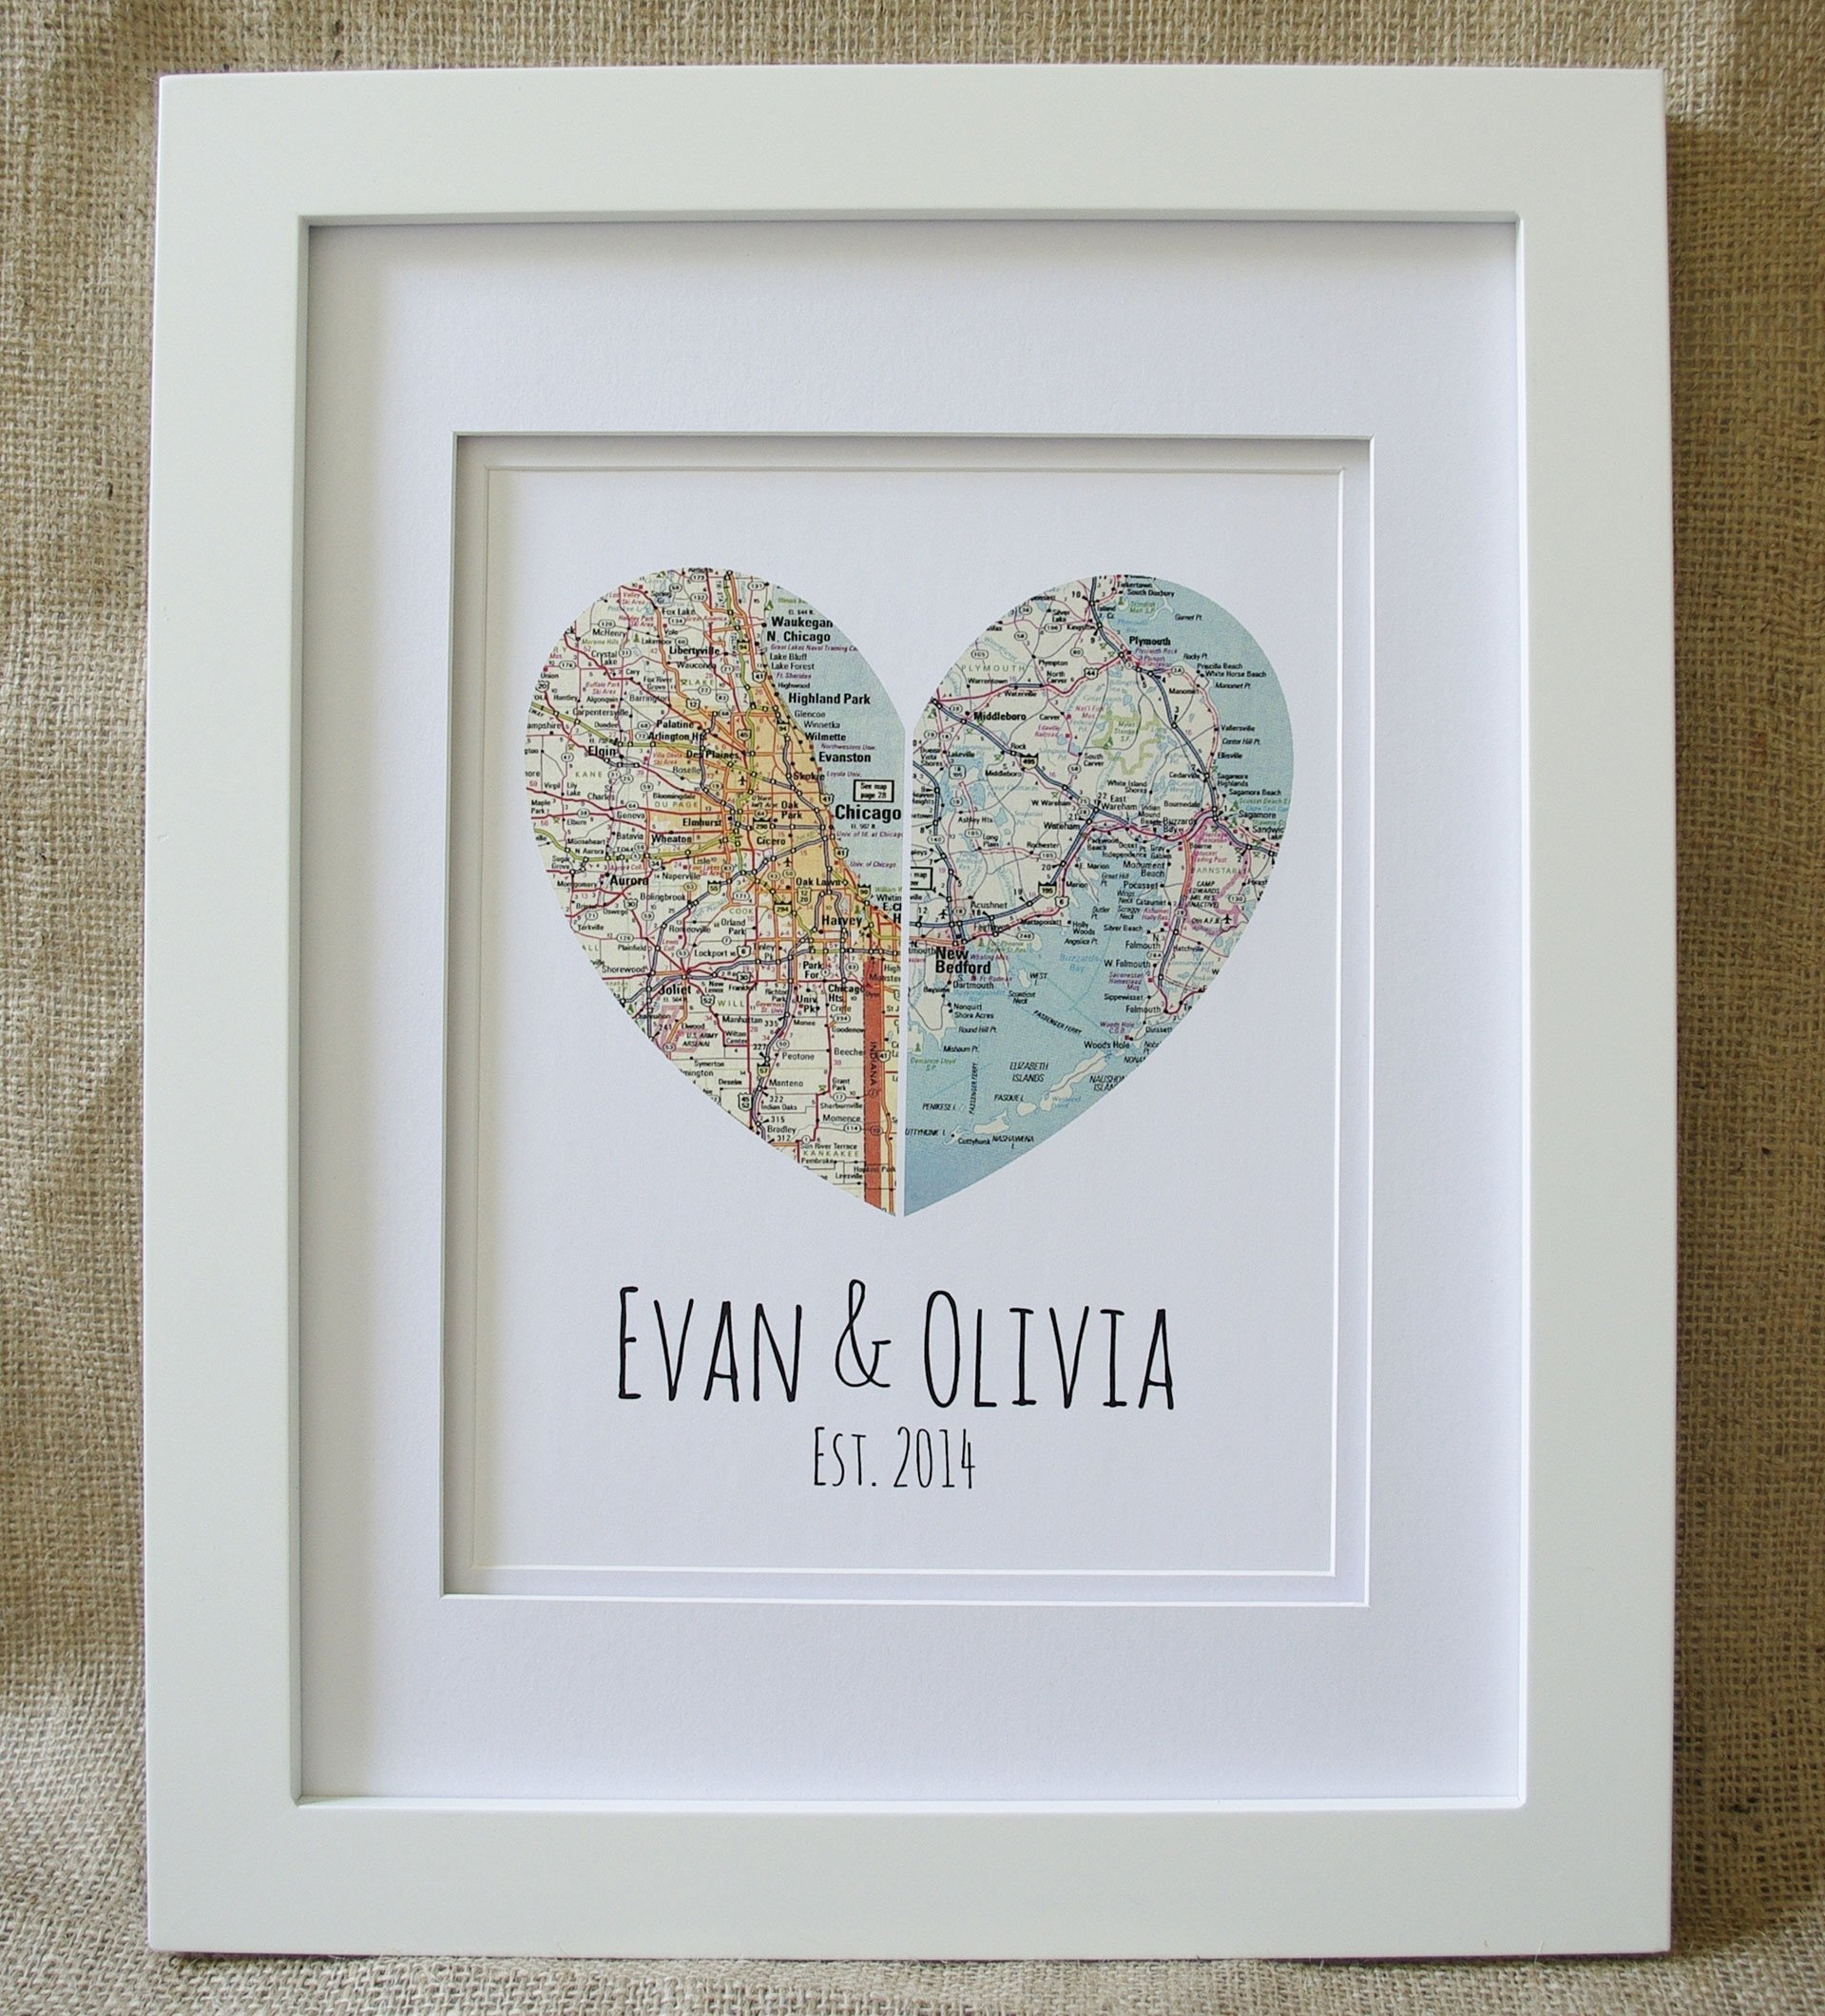 10 Stylish Wedding Gift Ideas For Brother